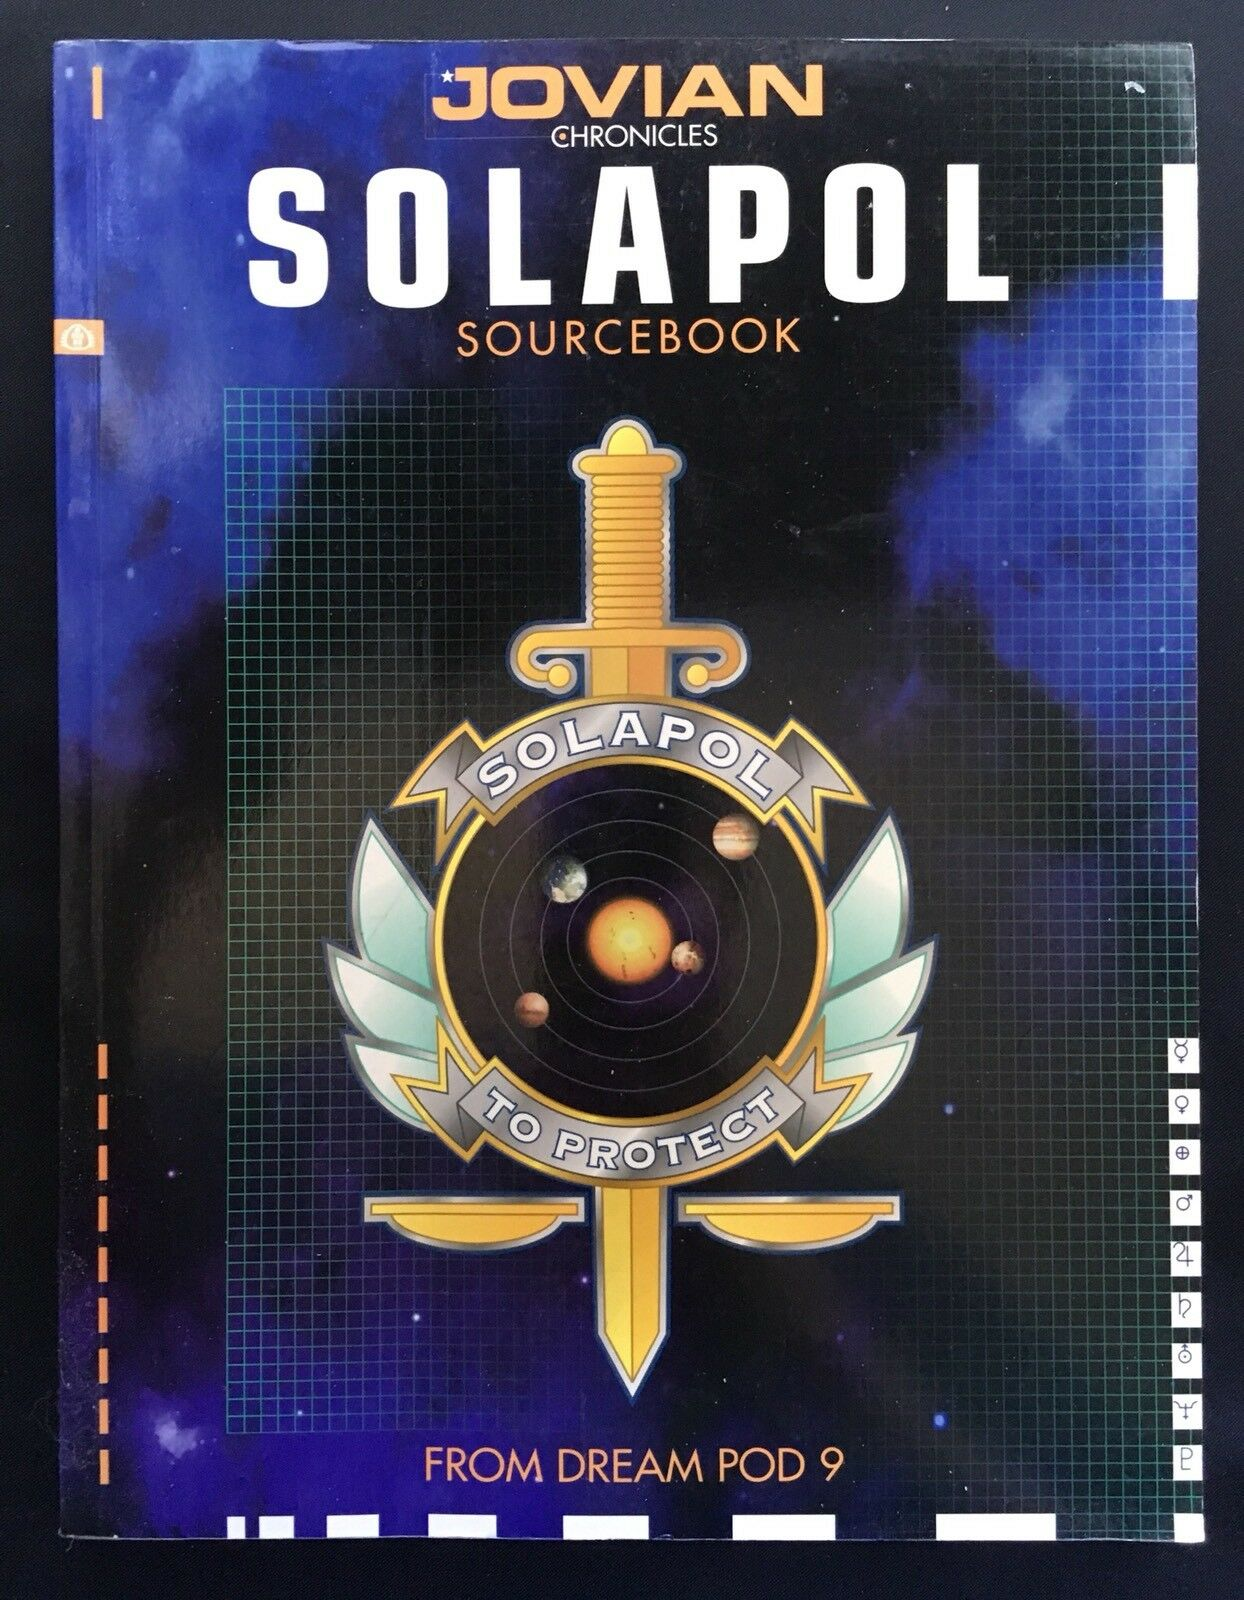 Jovian Chronicles - Solapol Sourcebook - Dream Pod 9